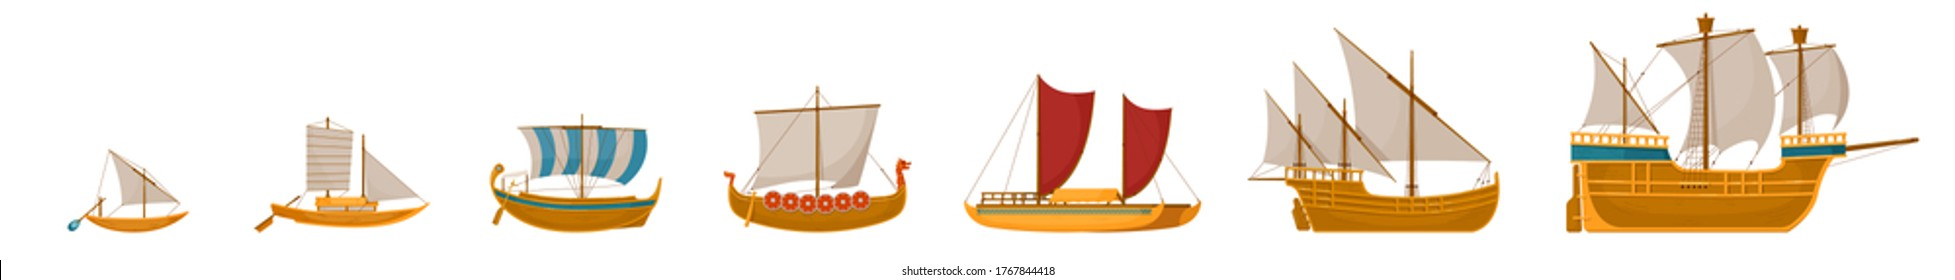 Vintage sailboats set. Isolated cartoon vintage wooden sail boat ship icon collection. Vector old nautical sailboat vessel and ocean travel concept